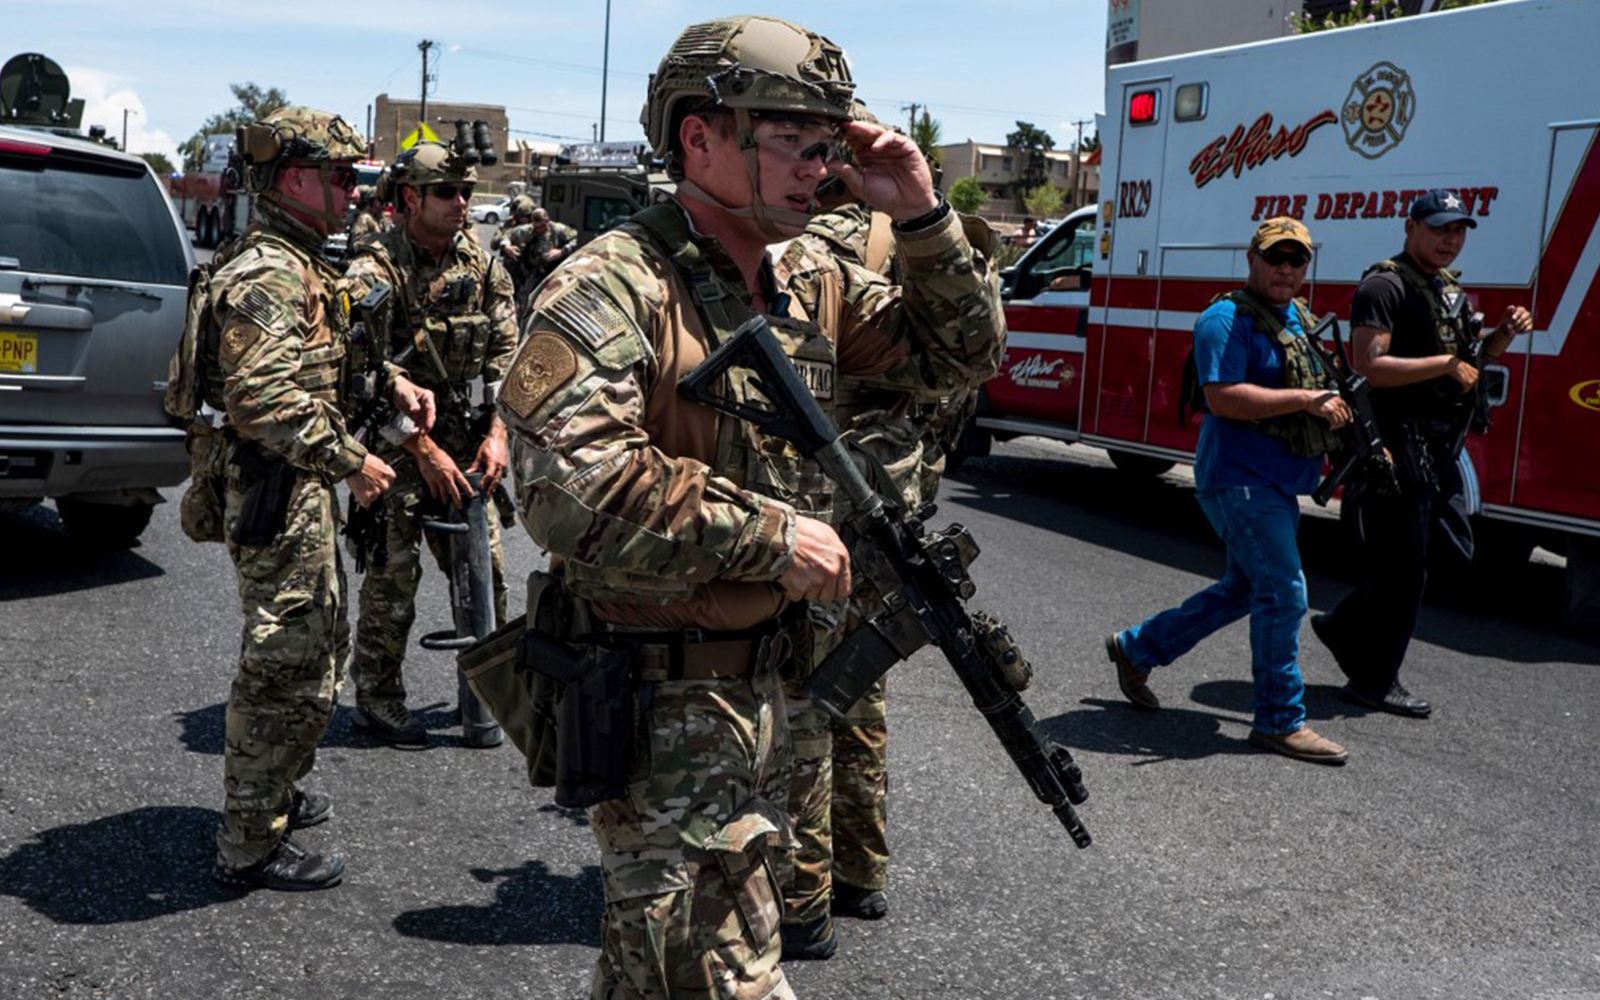 El Paso Shooting: 20 Dead; Potential 'Nexus To Hate Crime' Being Probed